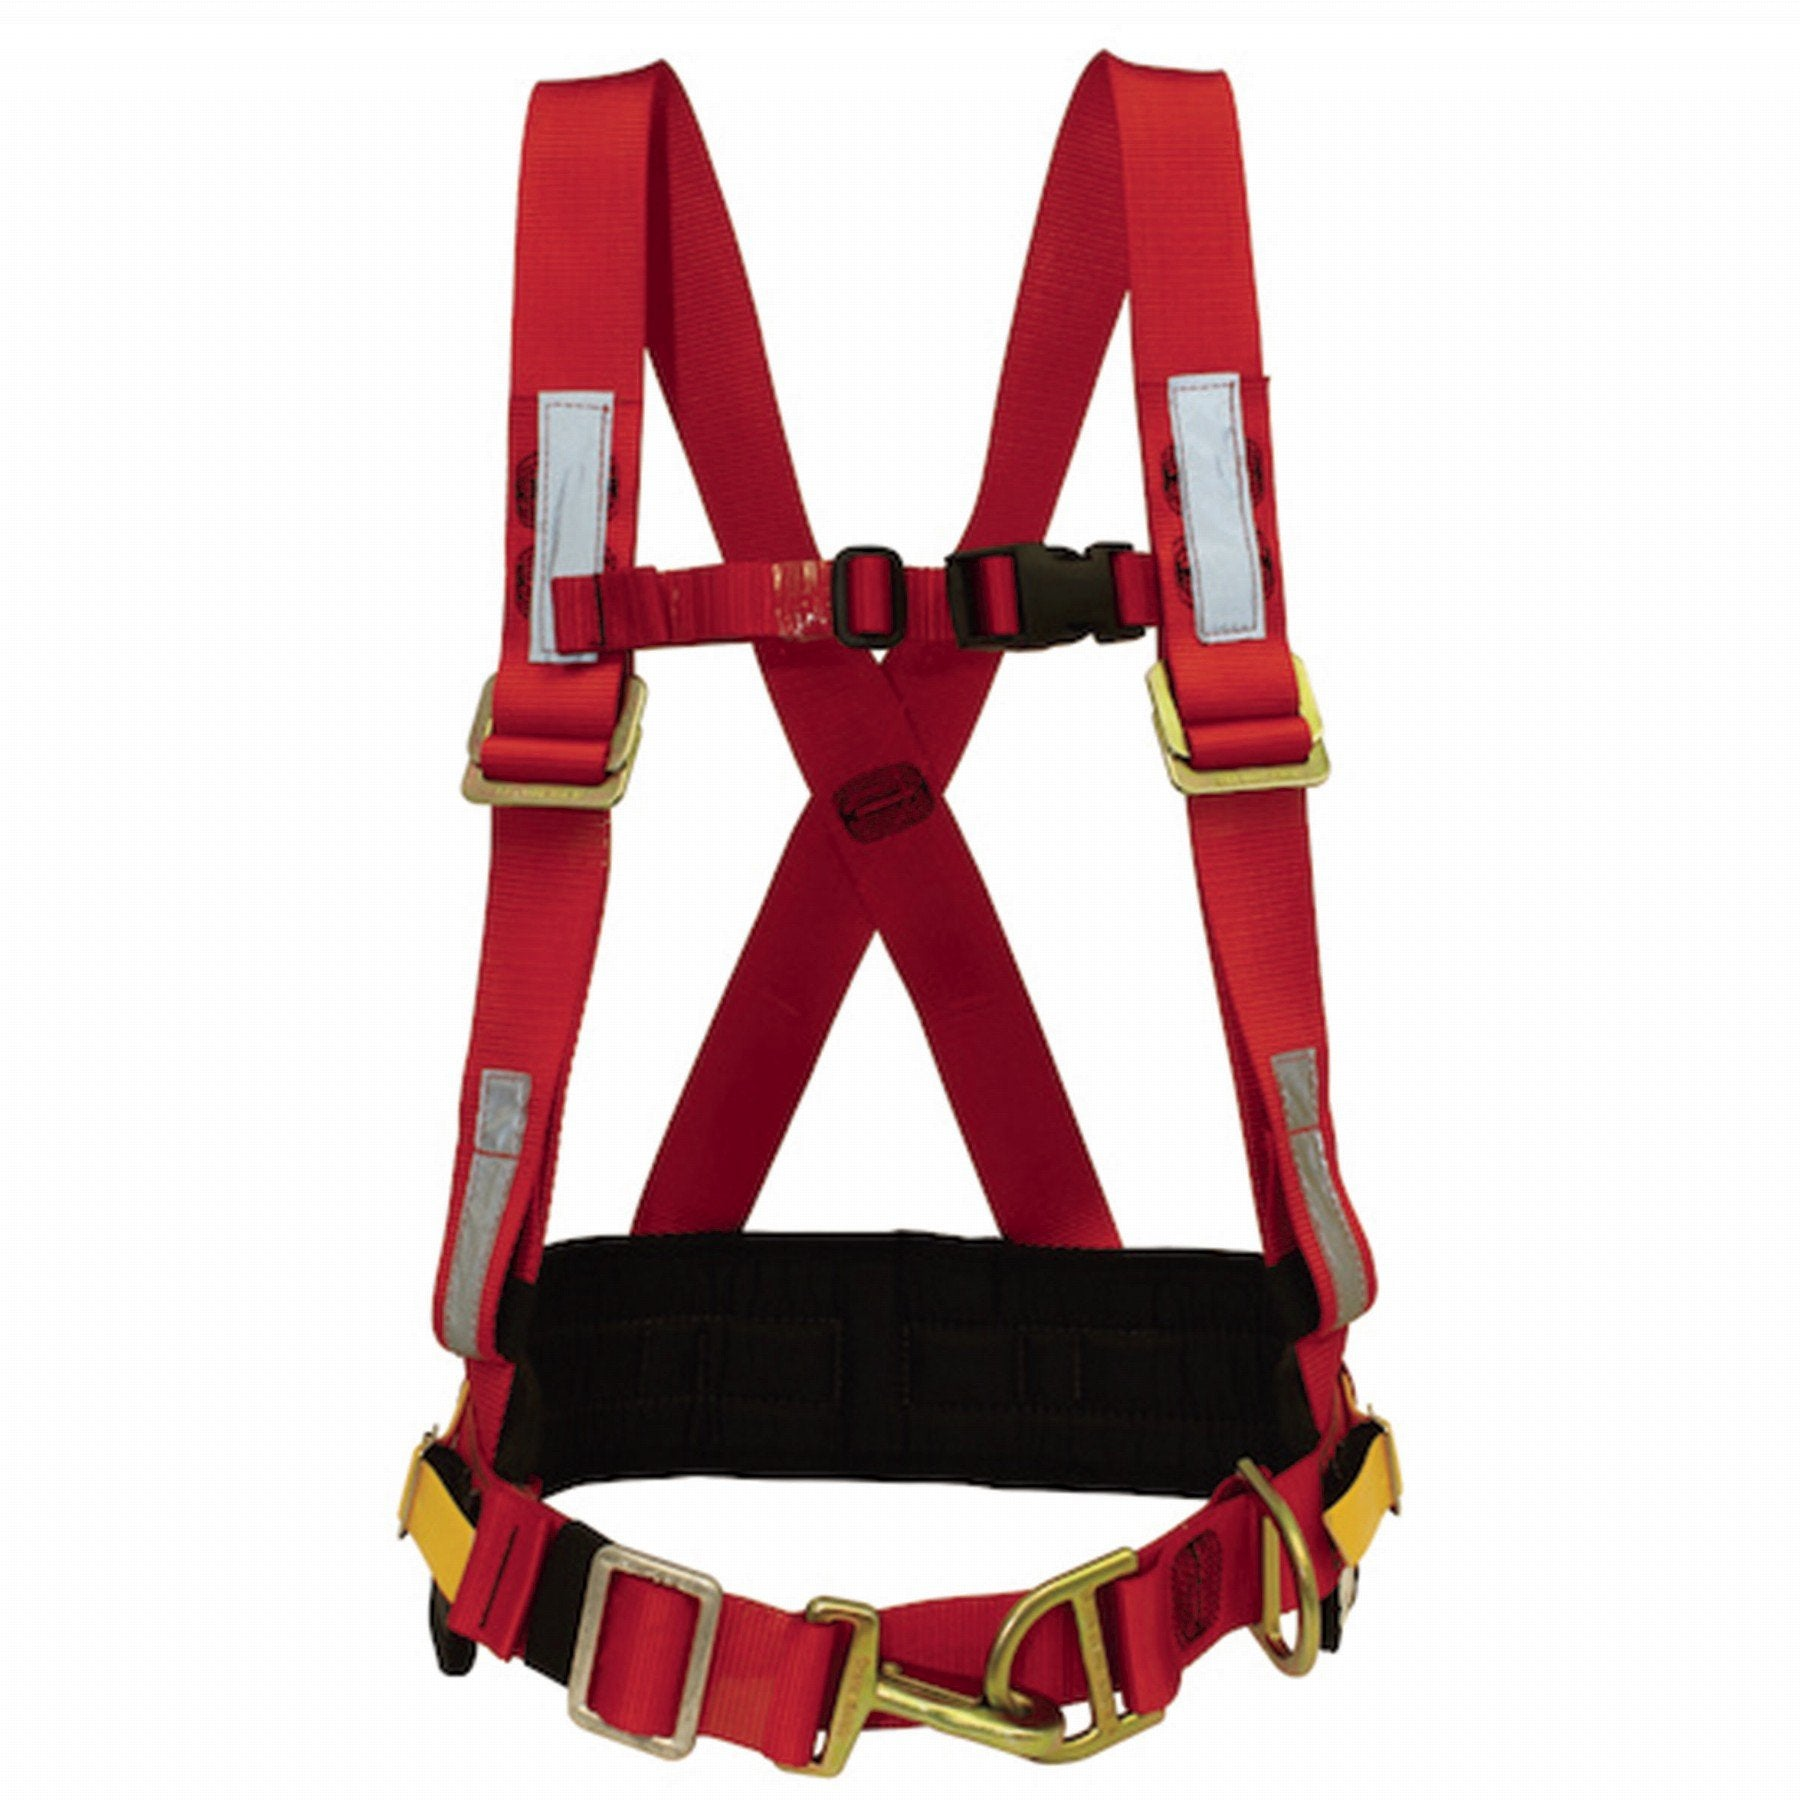 Protecta Miners Belts - crossover shoulder straps